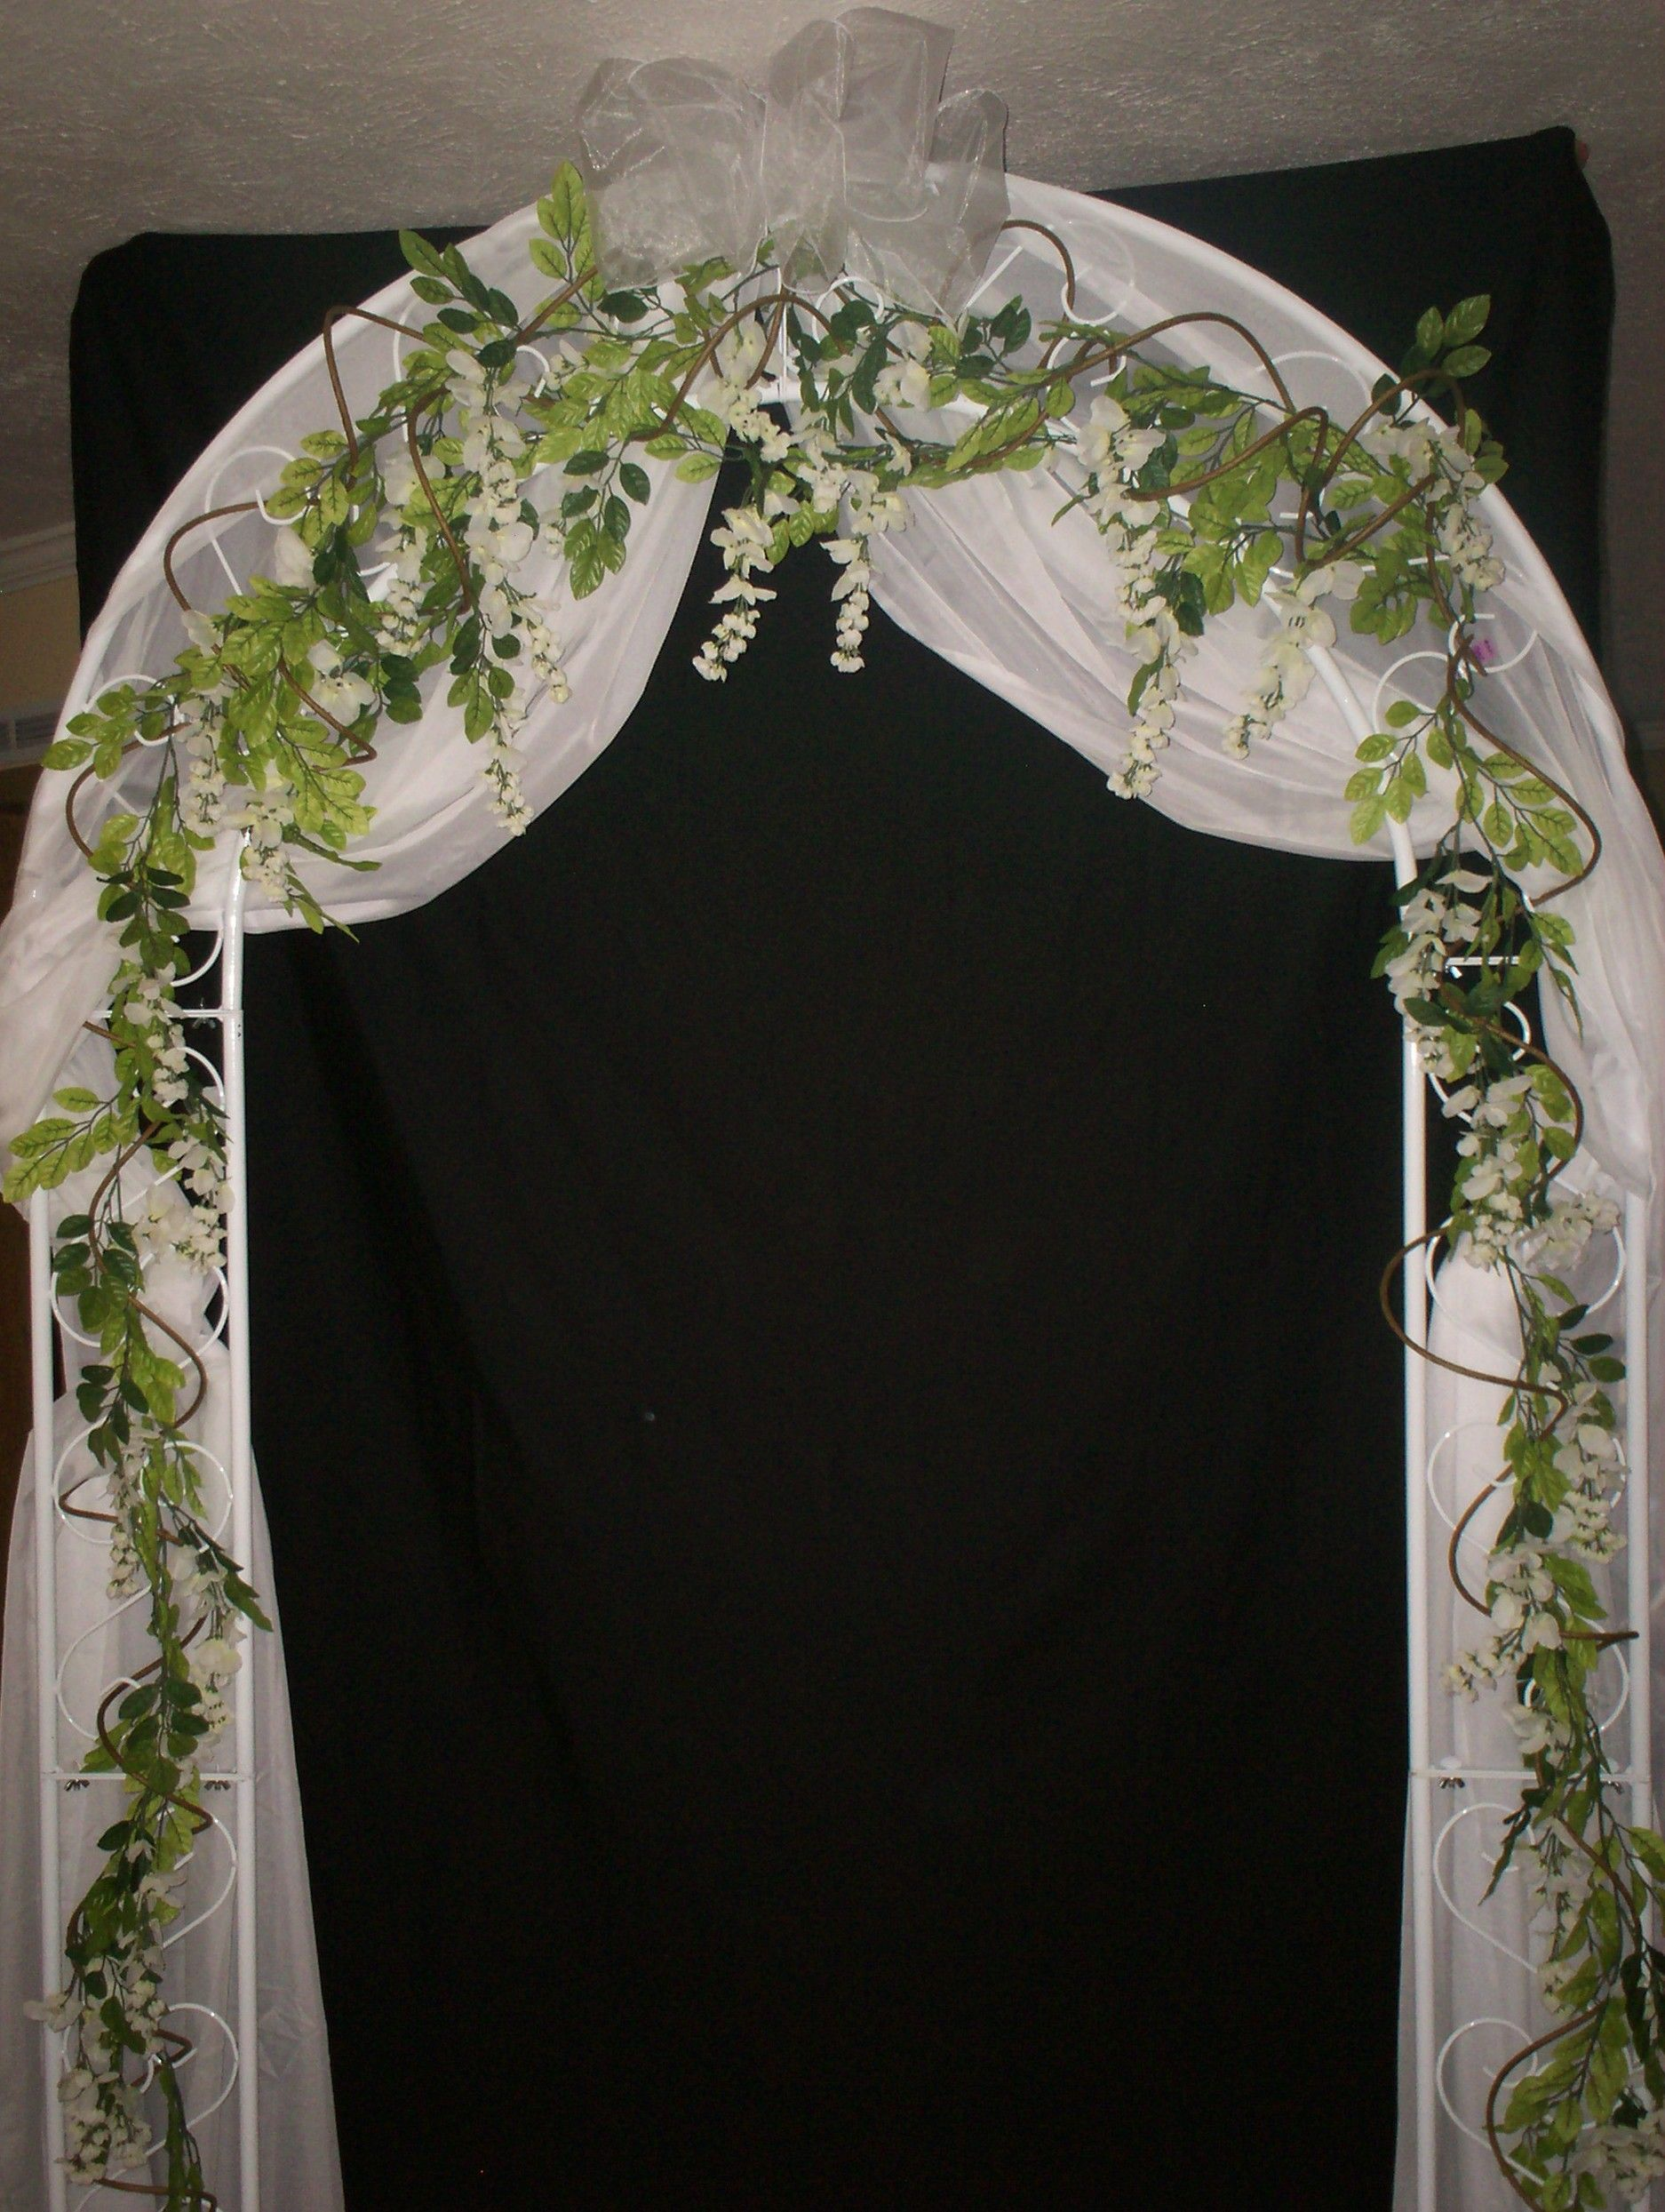 Wedding Arch Decorations Indoor Wedding Arch Decorations All Includive Wedding Package